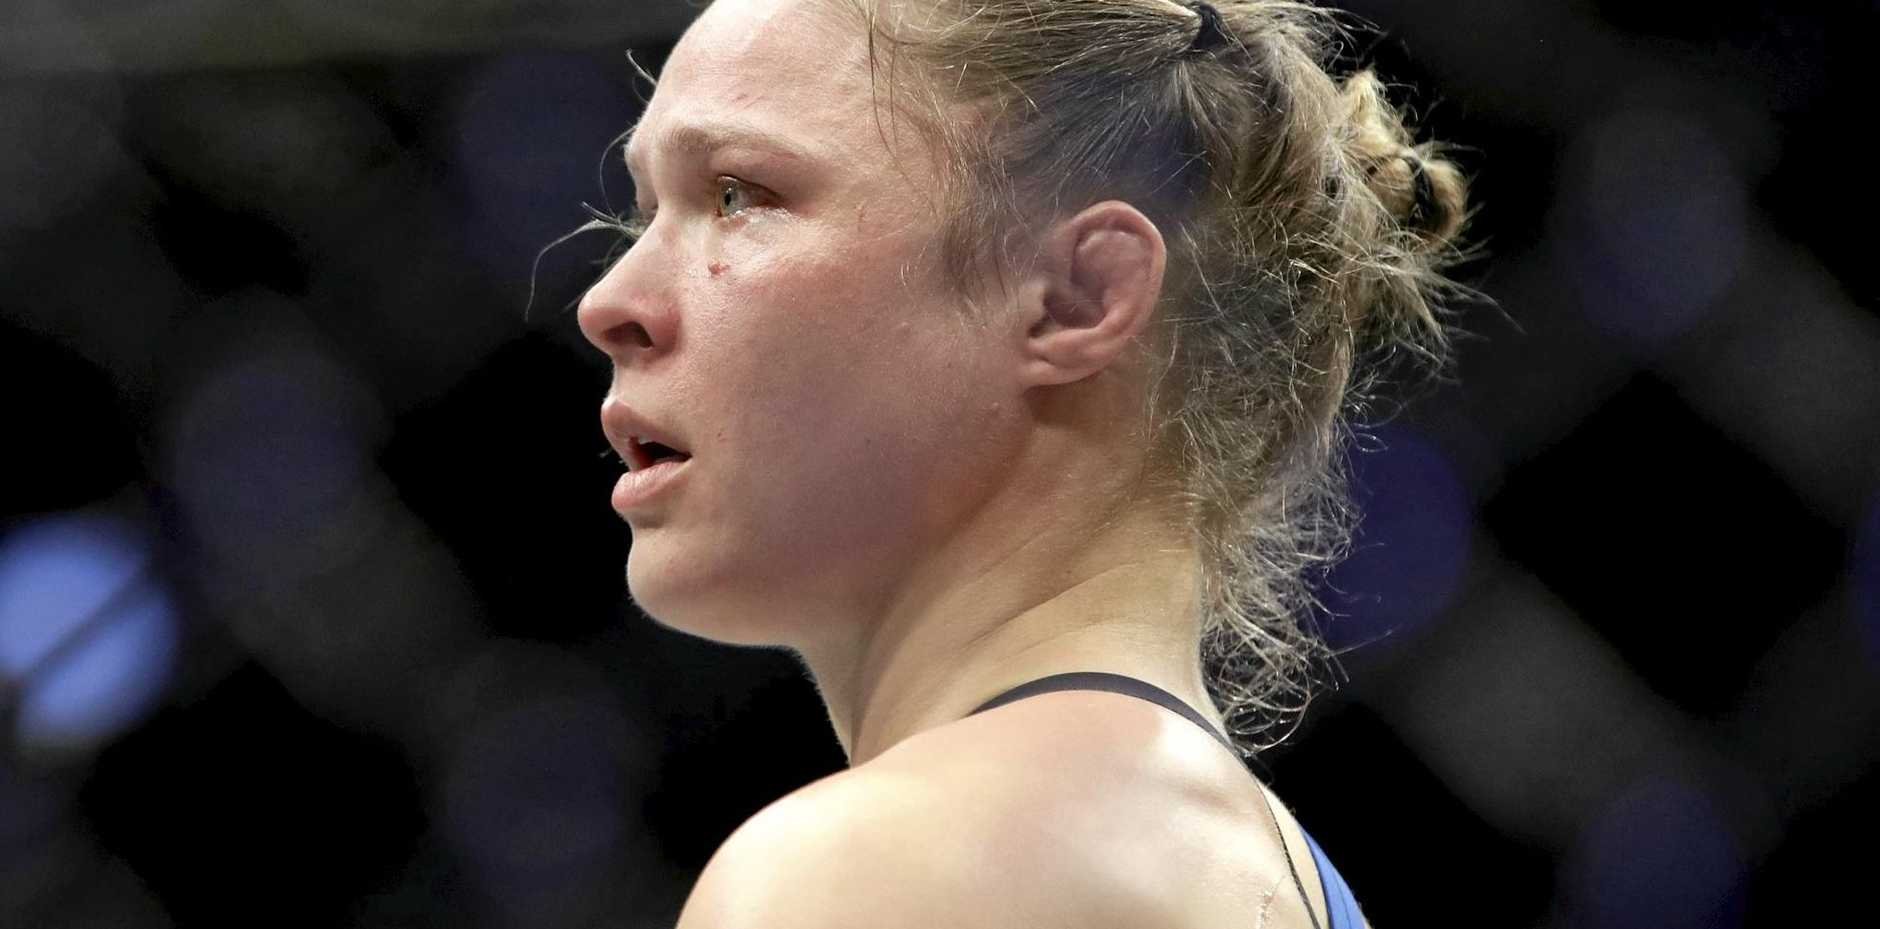 Ronda Rousey after her women's bantamweight championship mixed martial arts bout with Amanda Nunes.